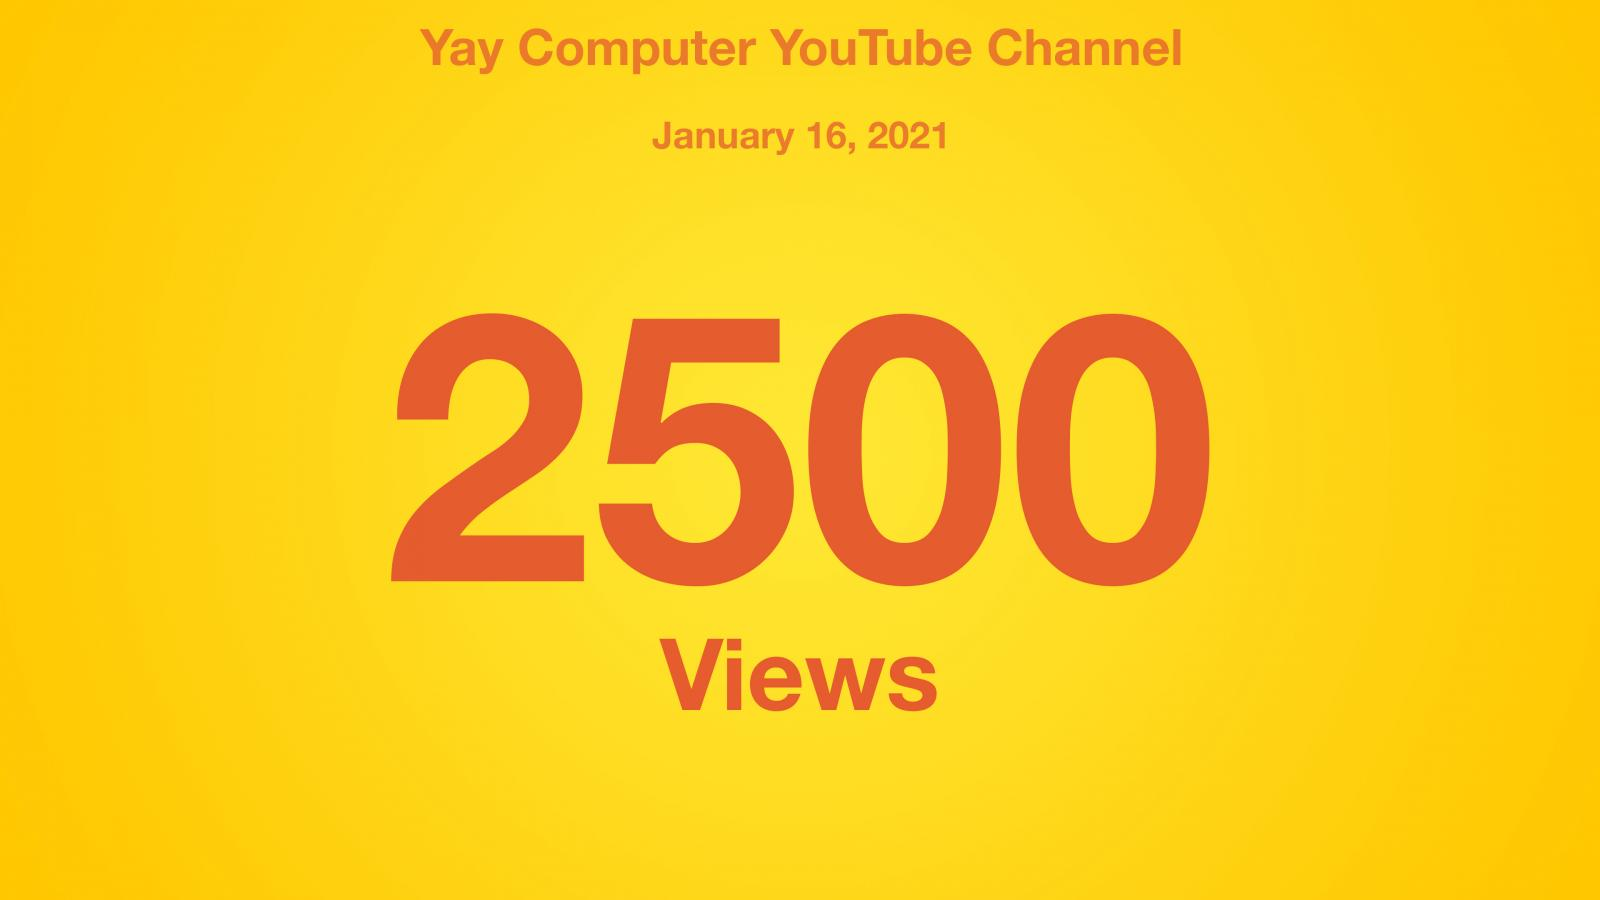 Yay Computer YouTube Channel, January 16, 2021, 2500 Views